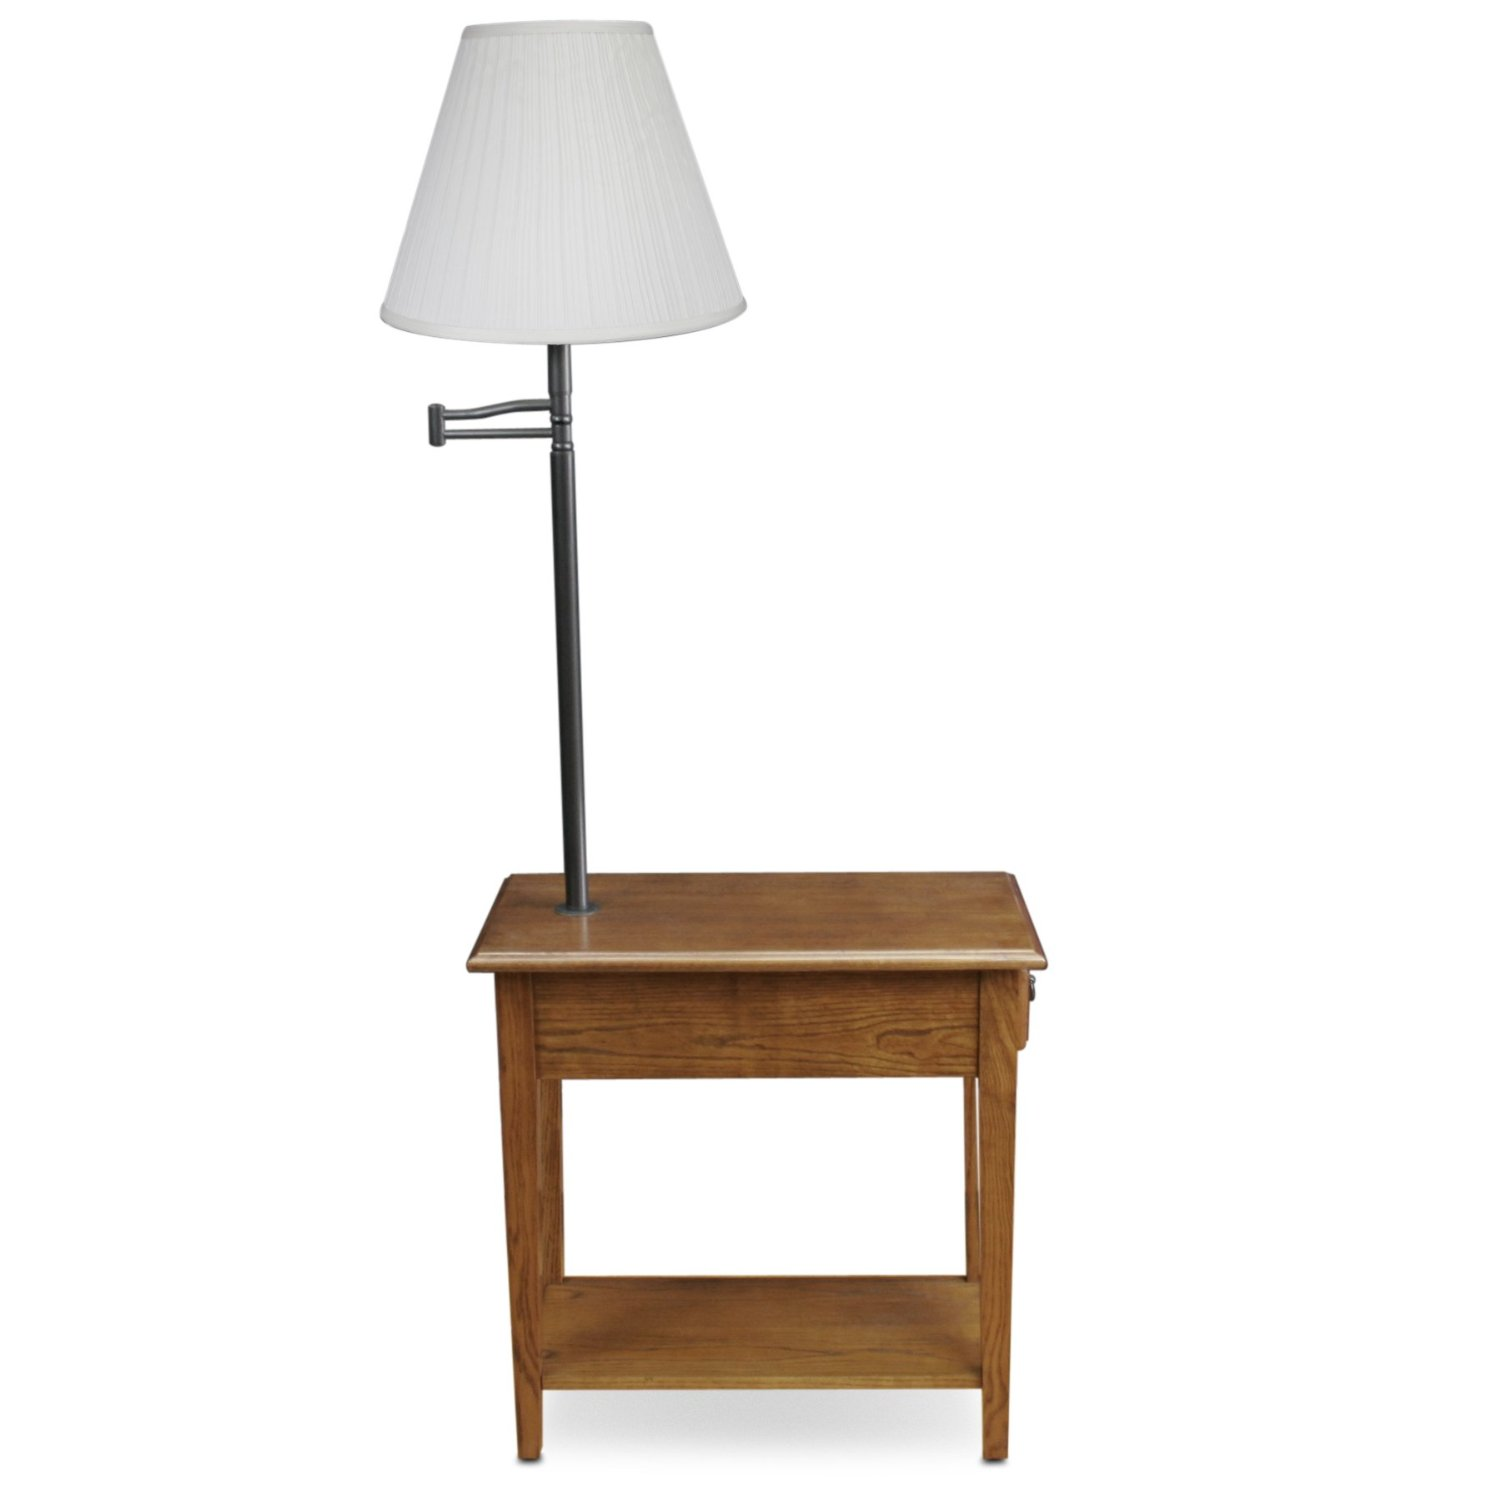 End table with attached lamp 10 reasons to buy warisan lighting end table with attached lamp 10 reasons to buy mozeypictures Image collections